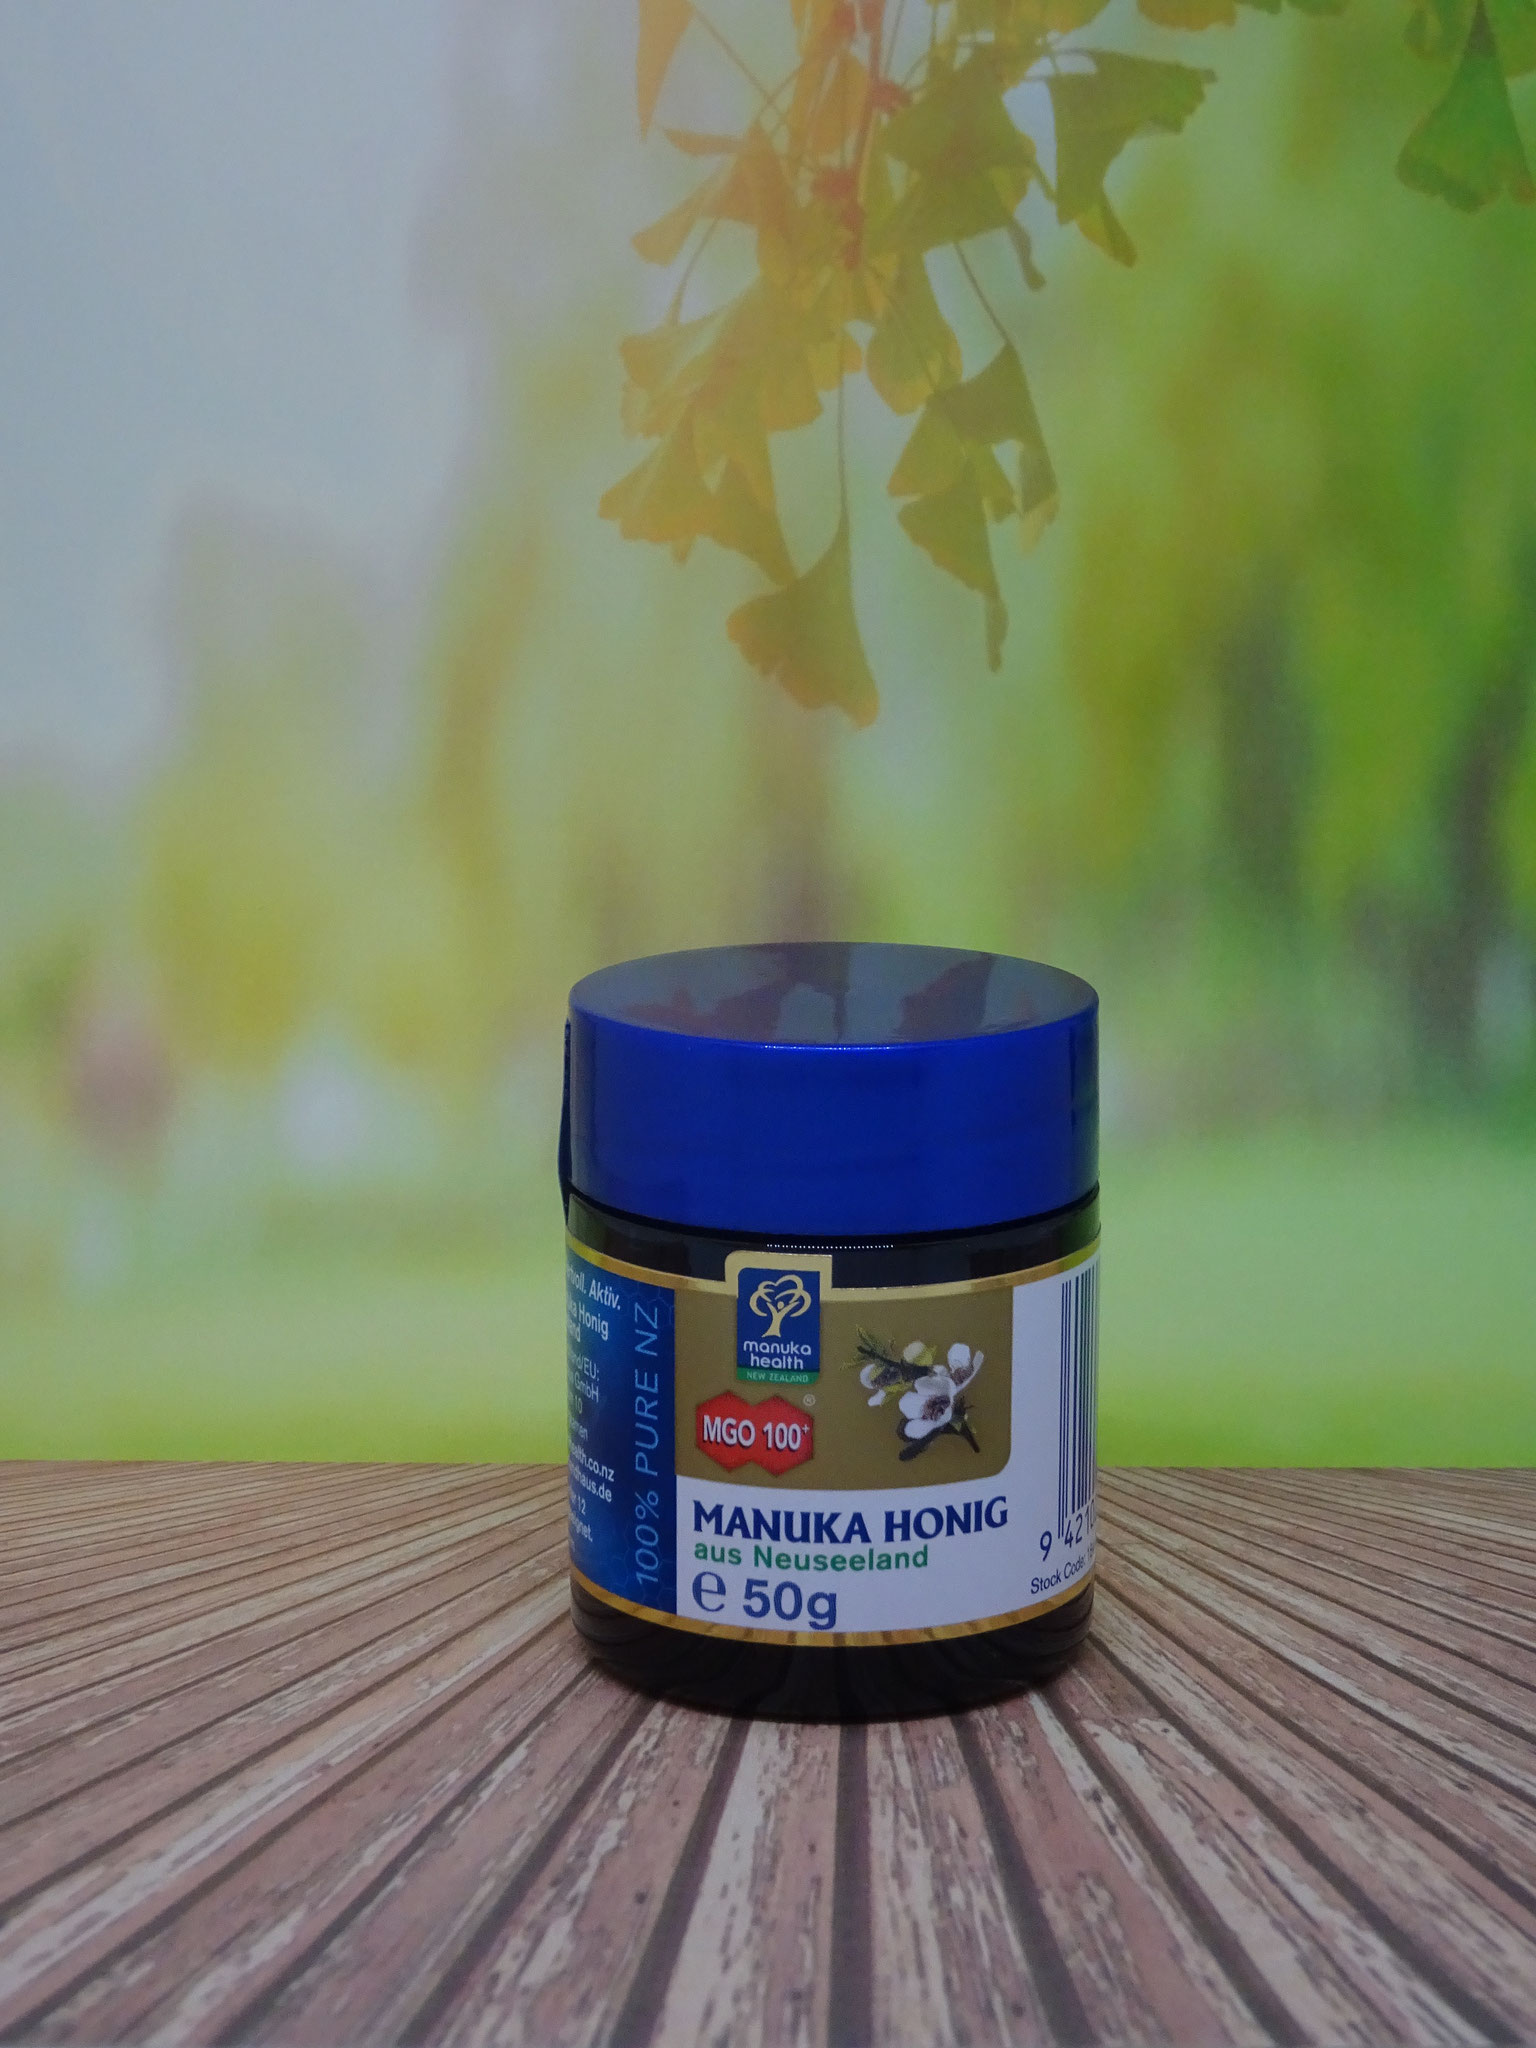 Manuka Honig MGO 100 50g (Manuka Health New Zealand)